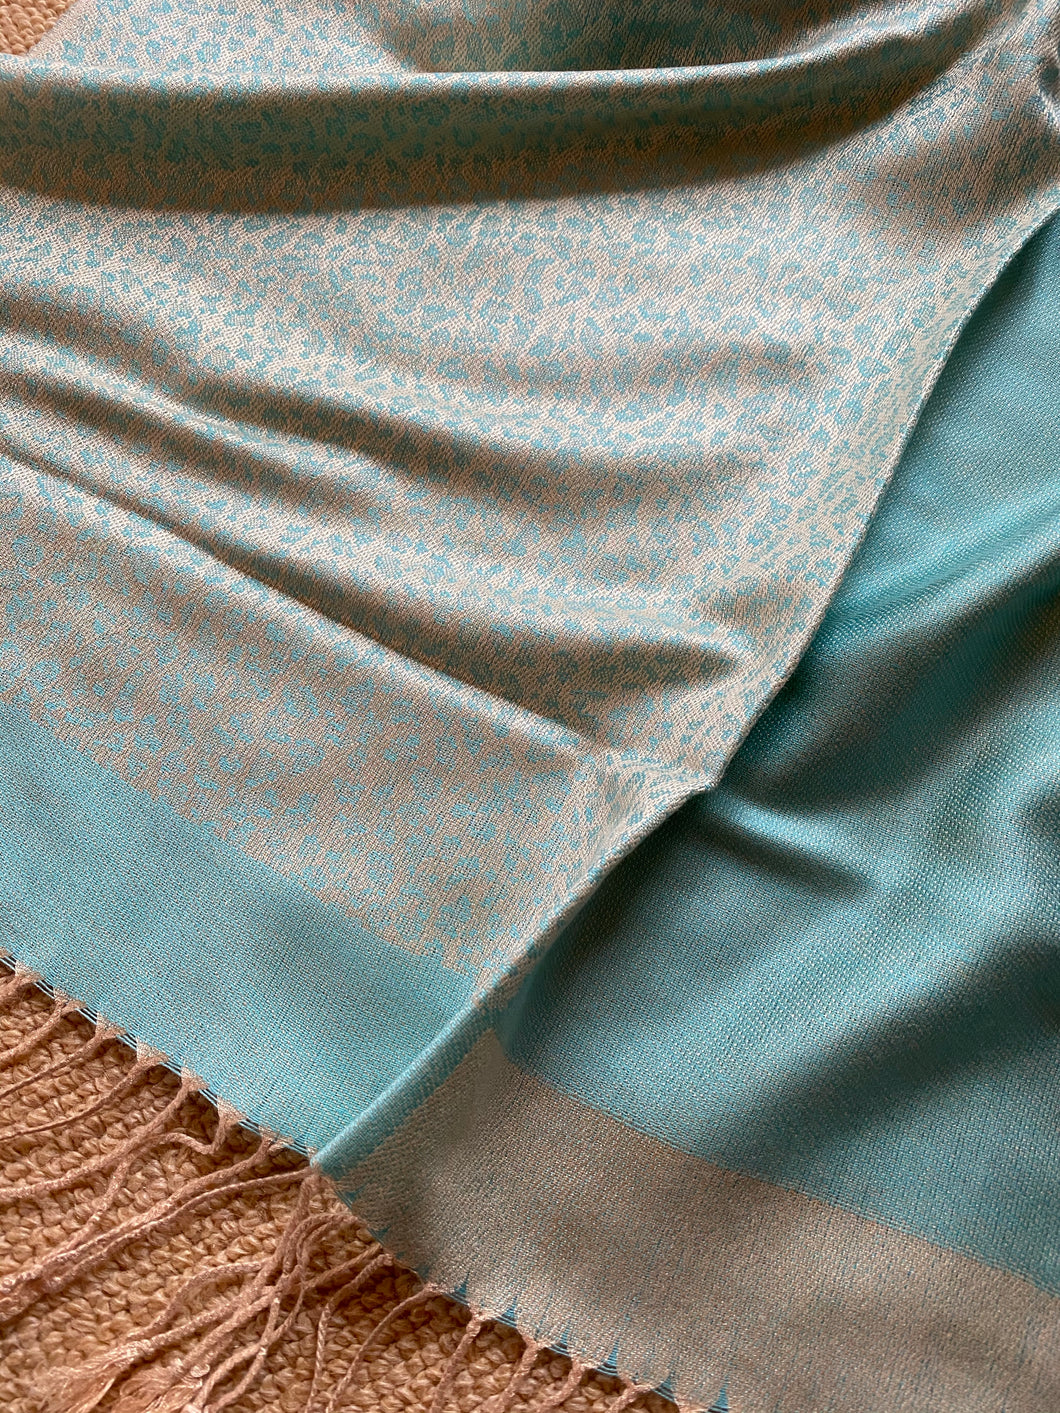 SP111 Fine wool, elegant scarf with tiny print and plain aqua pattern